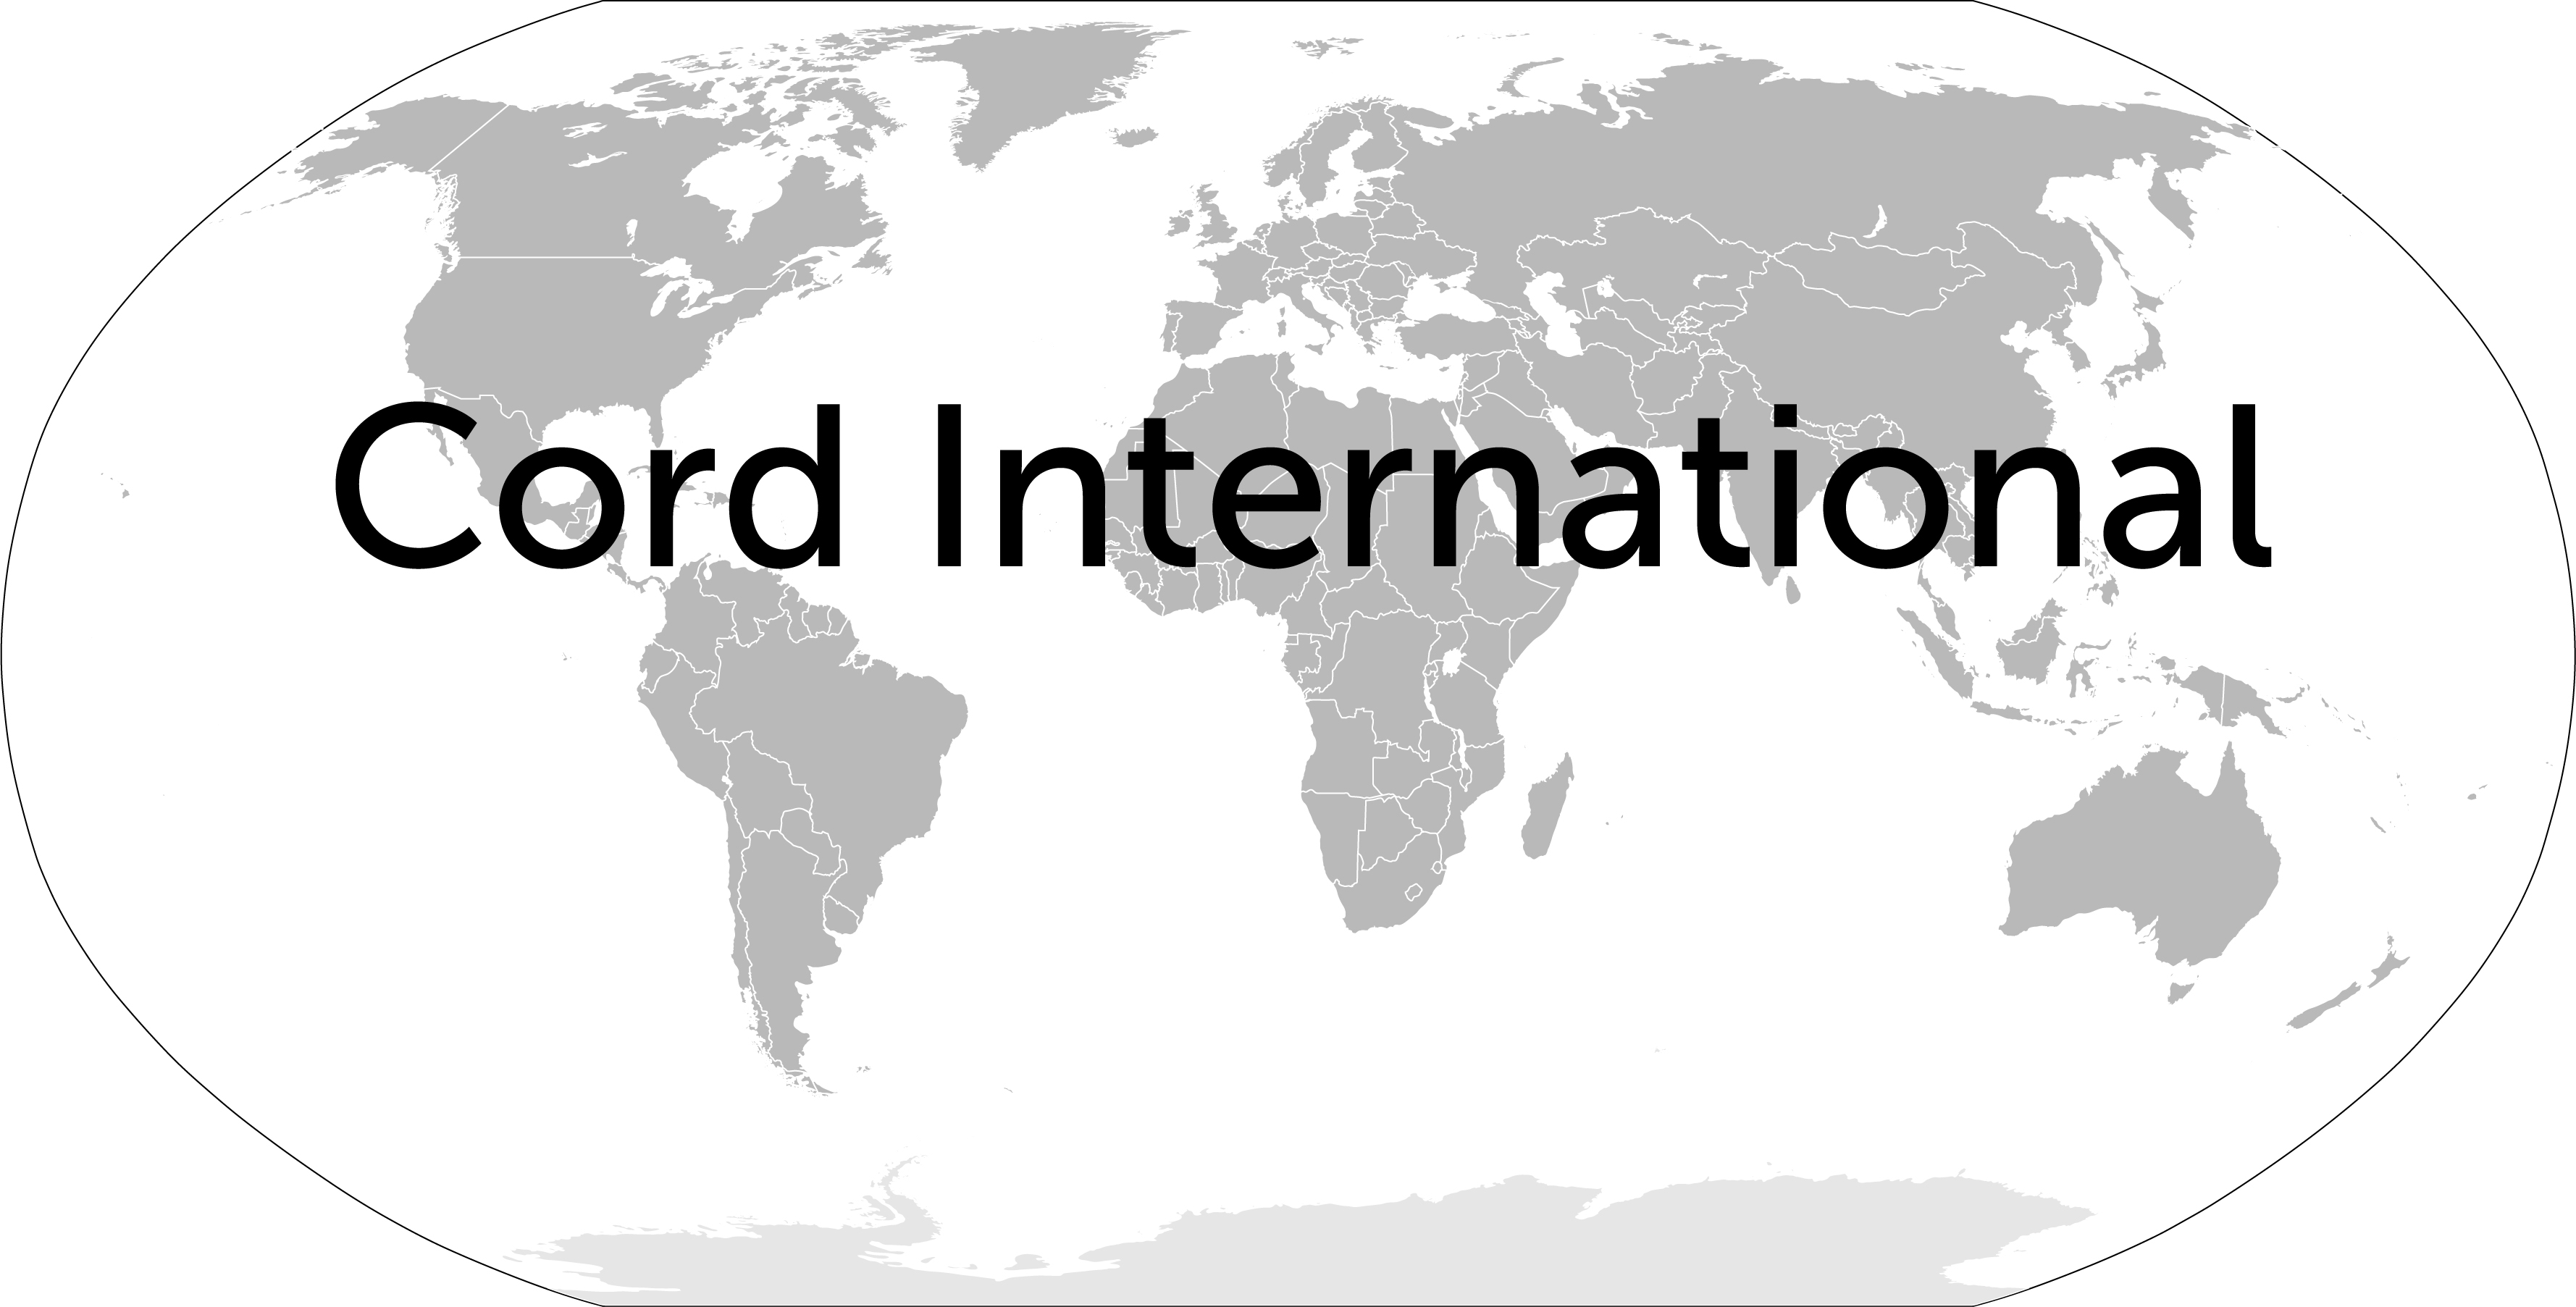 Cord Interanational map thing